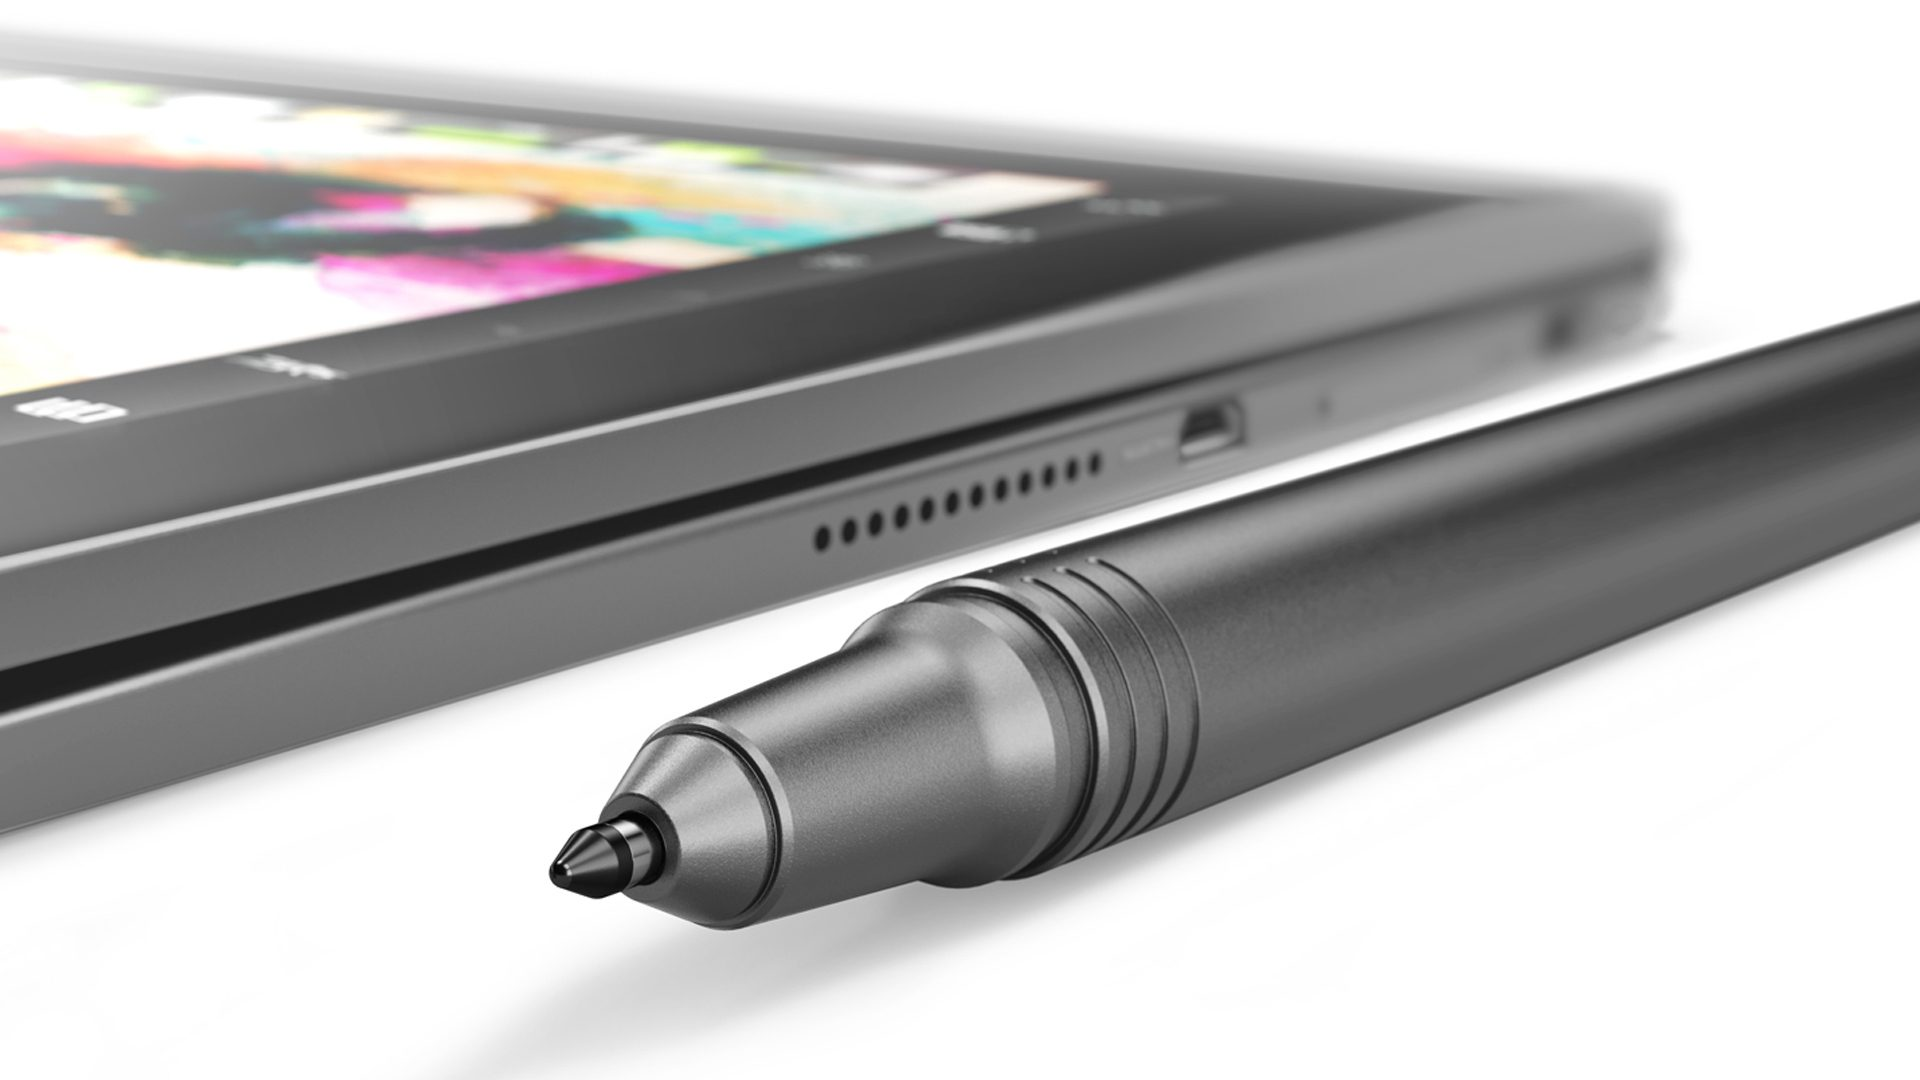 Lenovo-Yoga-Book-YB1-X91L_LTE_Android_Stift_3